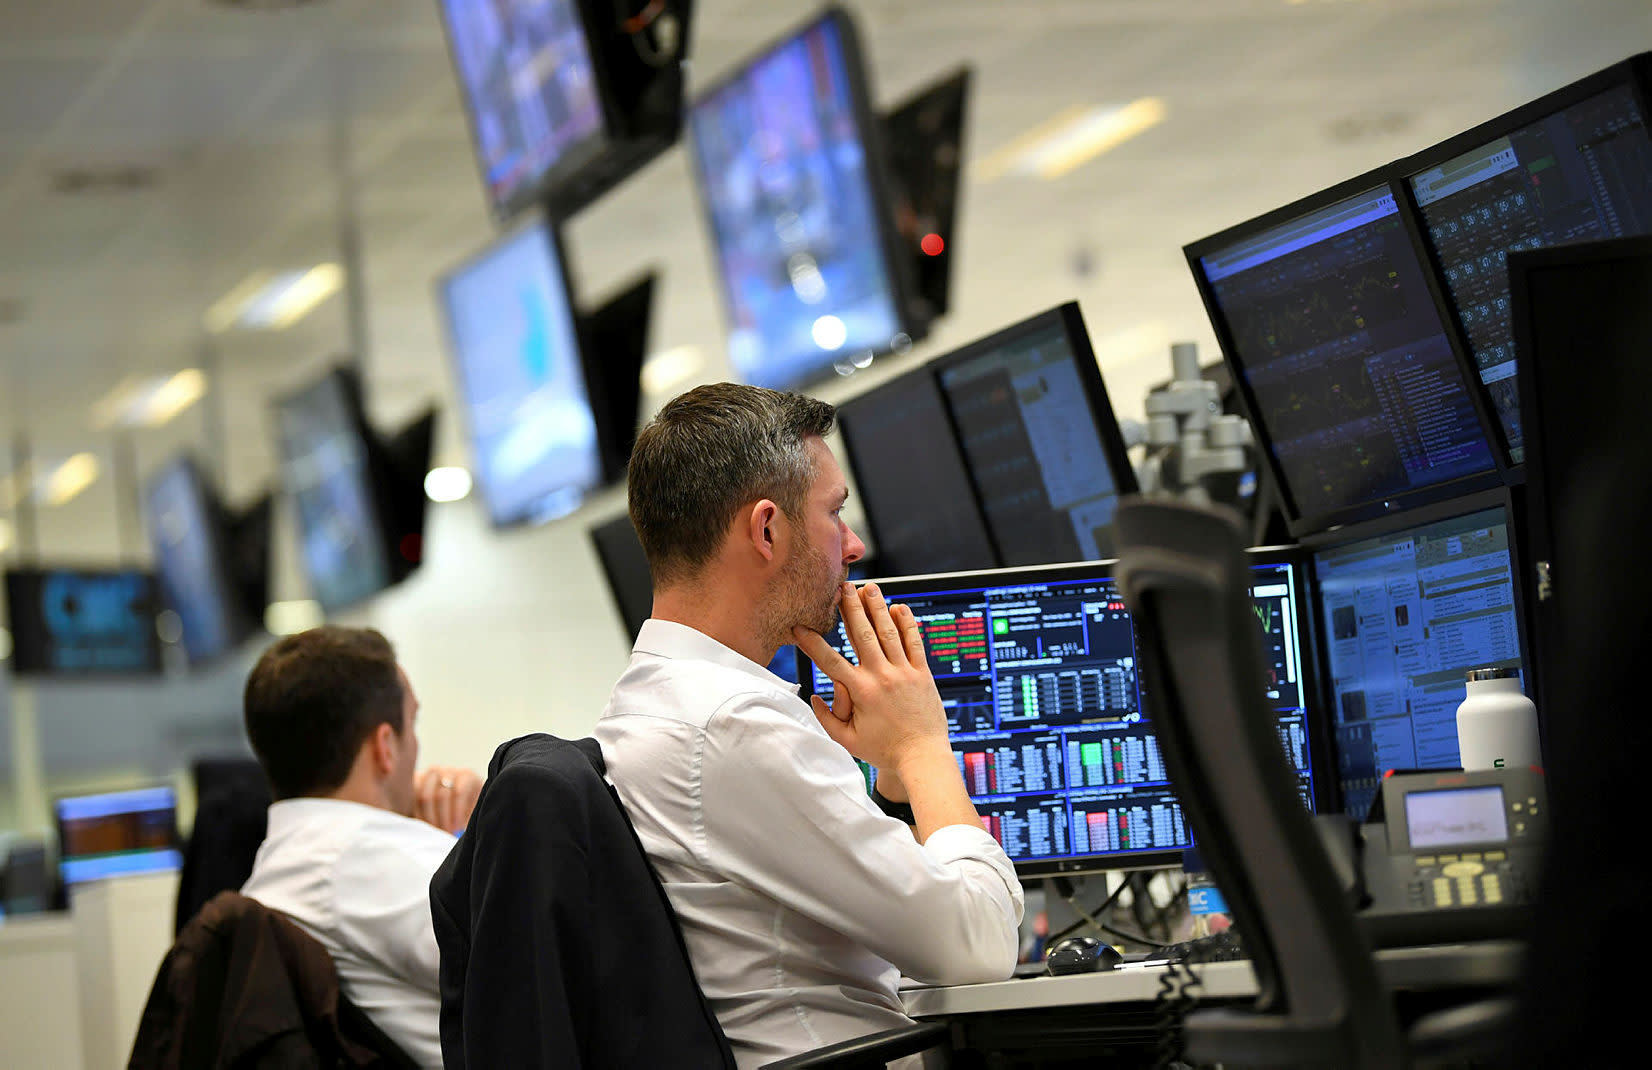 Outlook for corporate bonds weak due to Brexit uncertainty